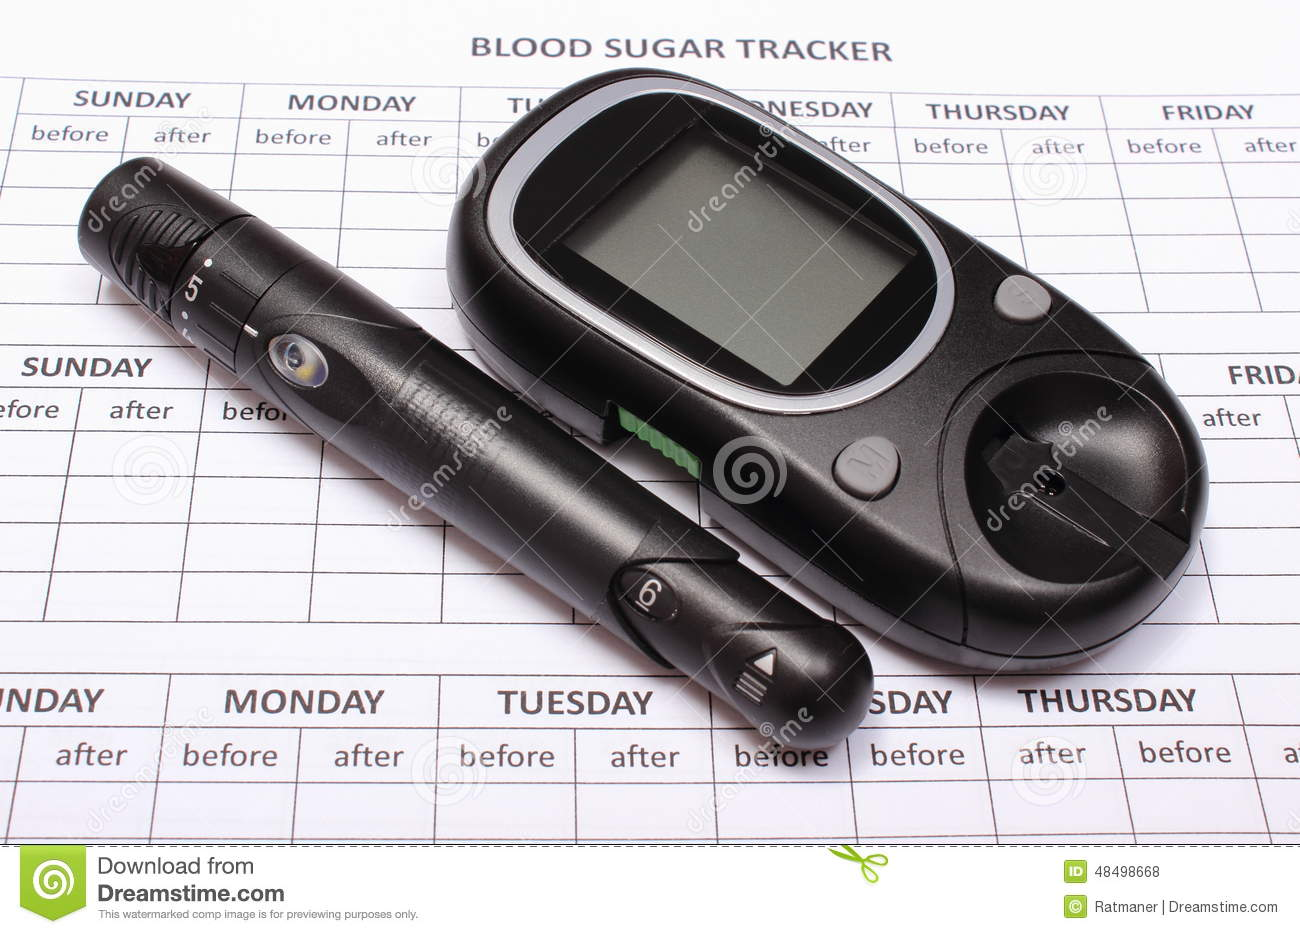 Glucometer And Lancet Device On Empty Medical Forms For Diabetes Stock Photo